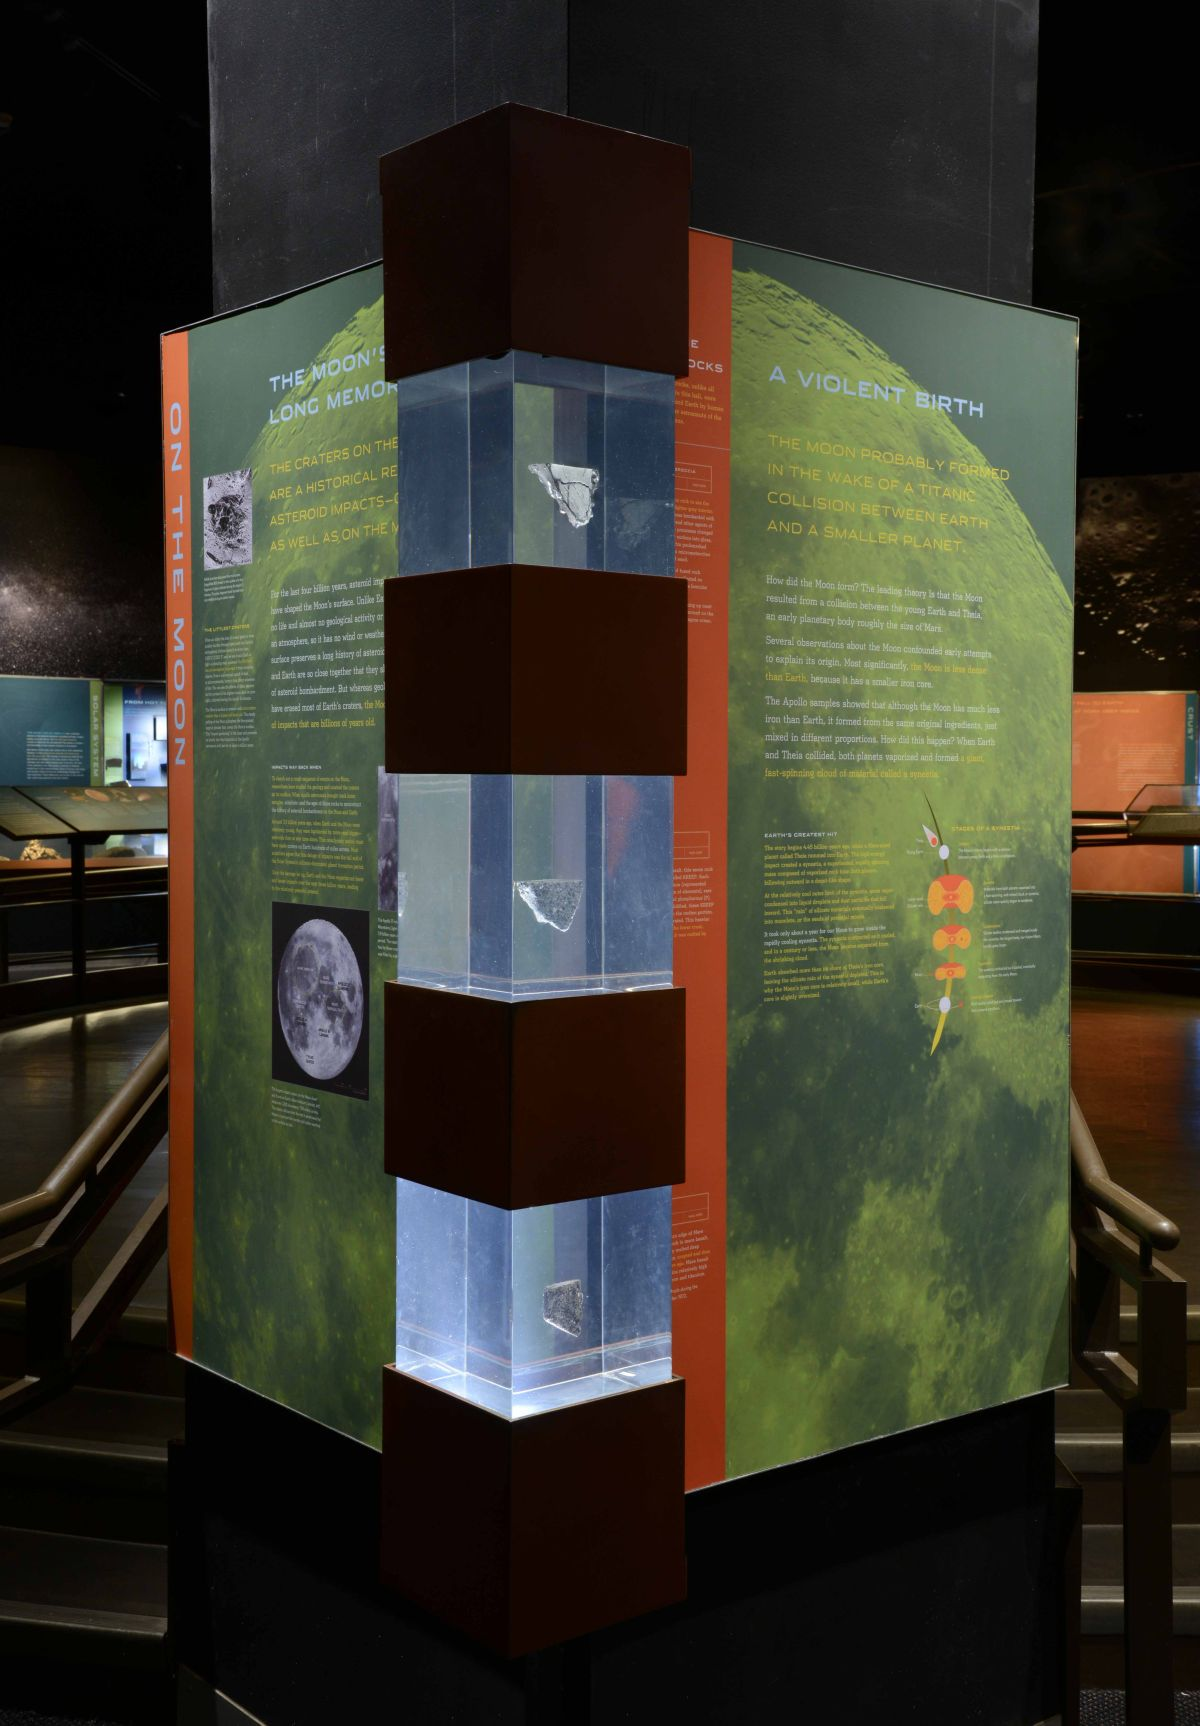 Moon Rocks and Lunar Meteorite Are the Stars in This NYC Exhibit | Space